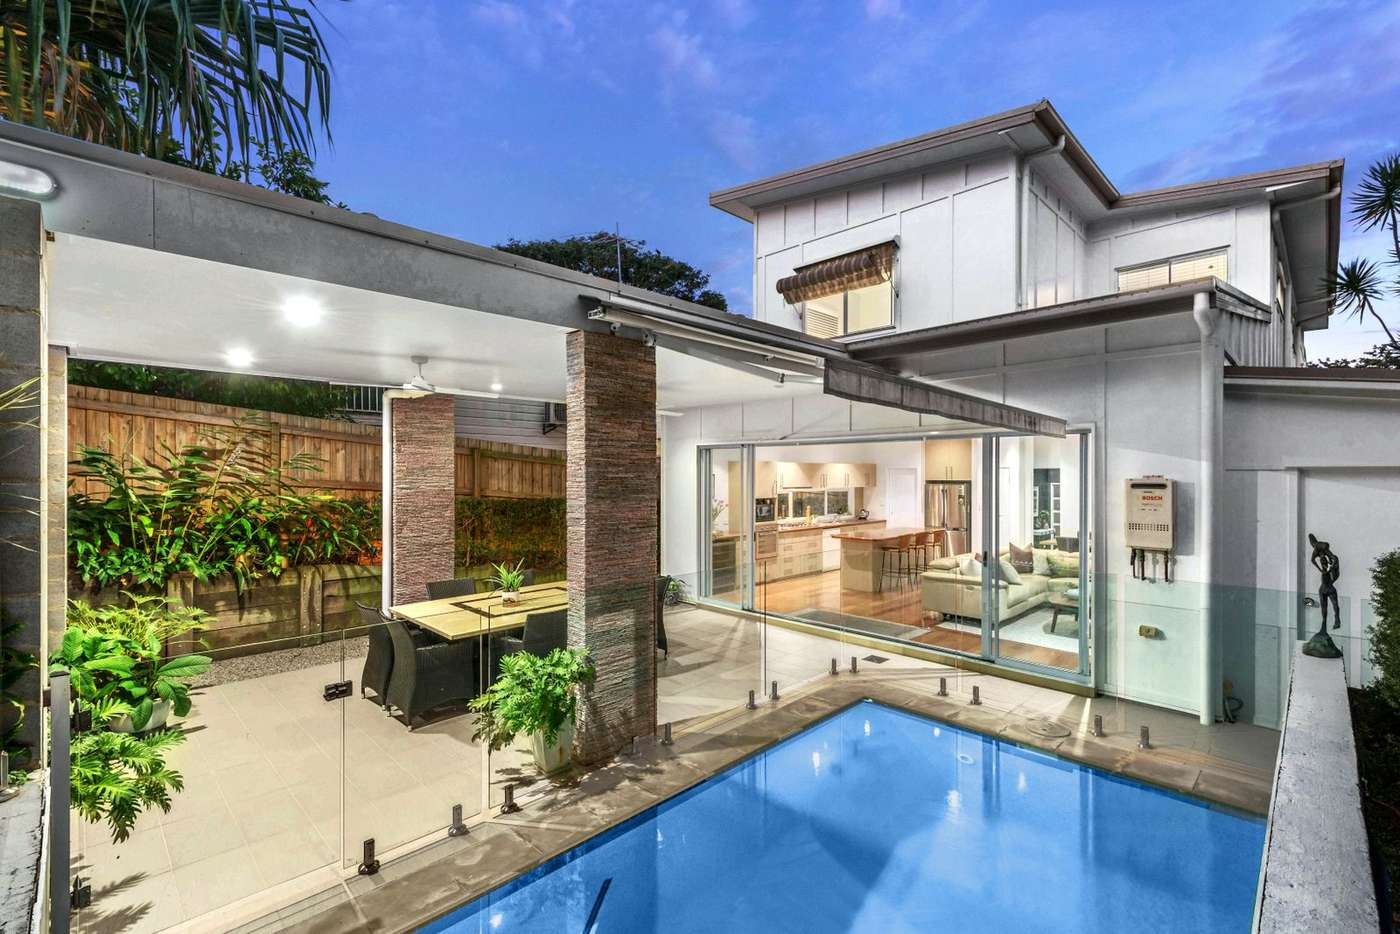 Main view of Homely house listing, 20 Thompson Street, Bulimba QLD 4171